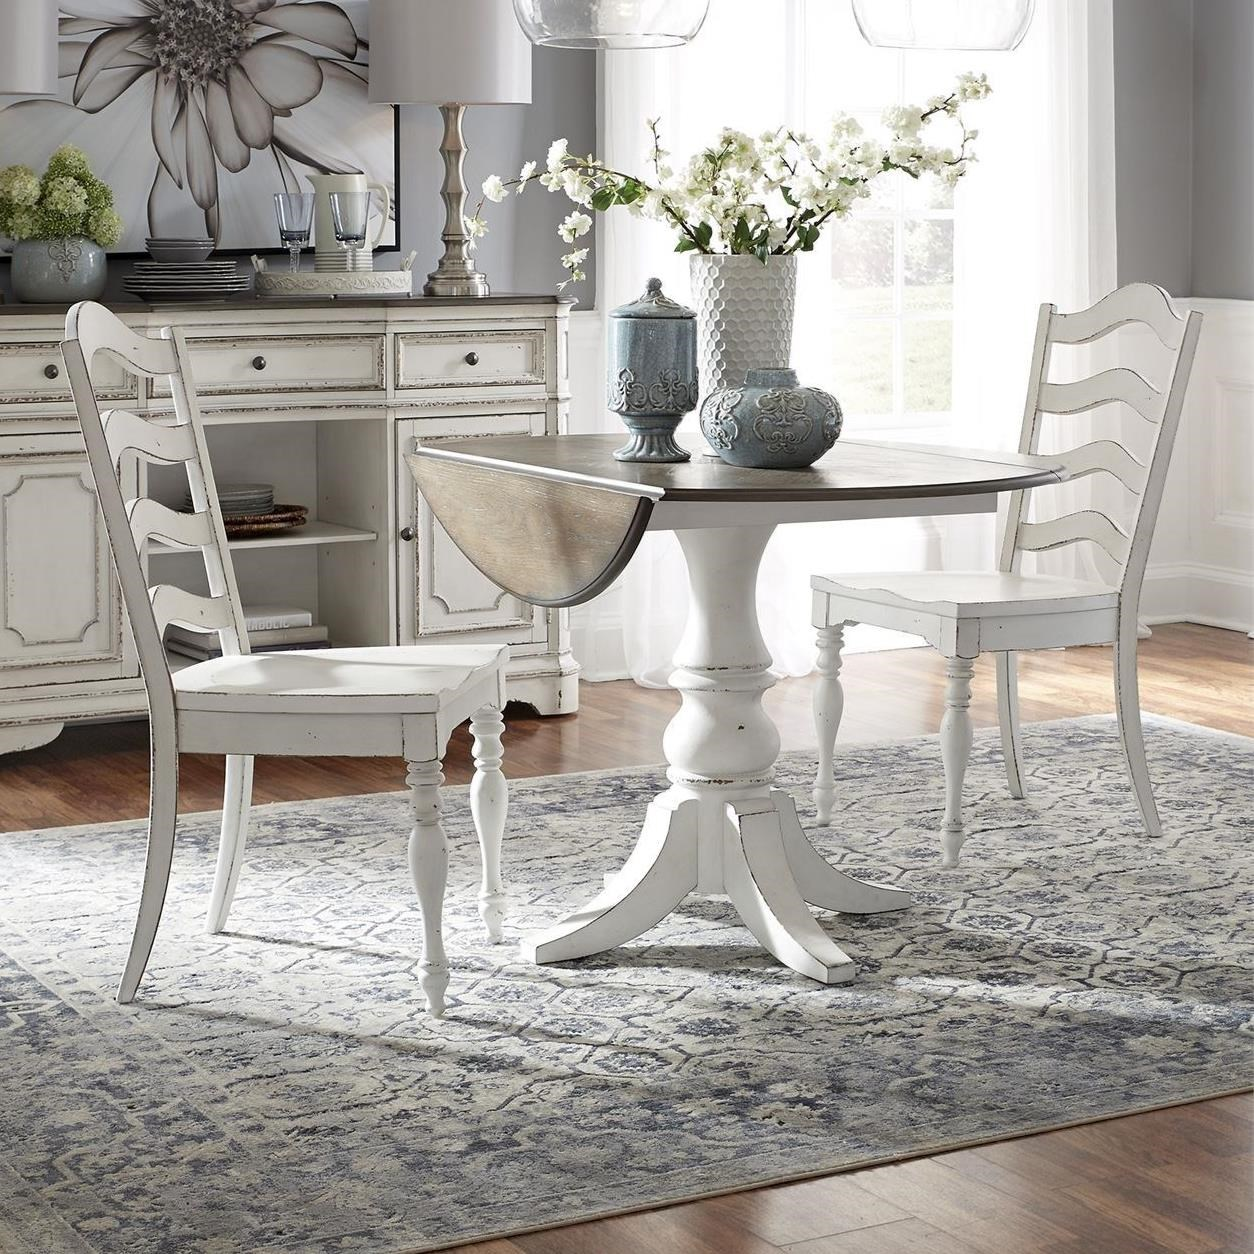 Magnolia Manor Dining 3 Piece Table and Chair Set by Liberty Furniture at Bullard Furniture